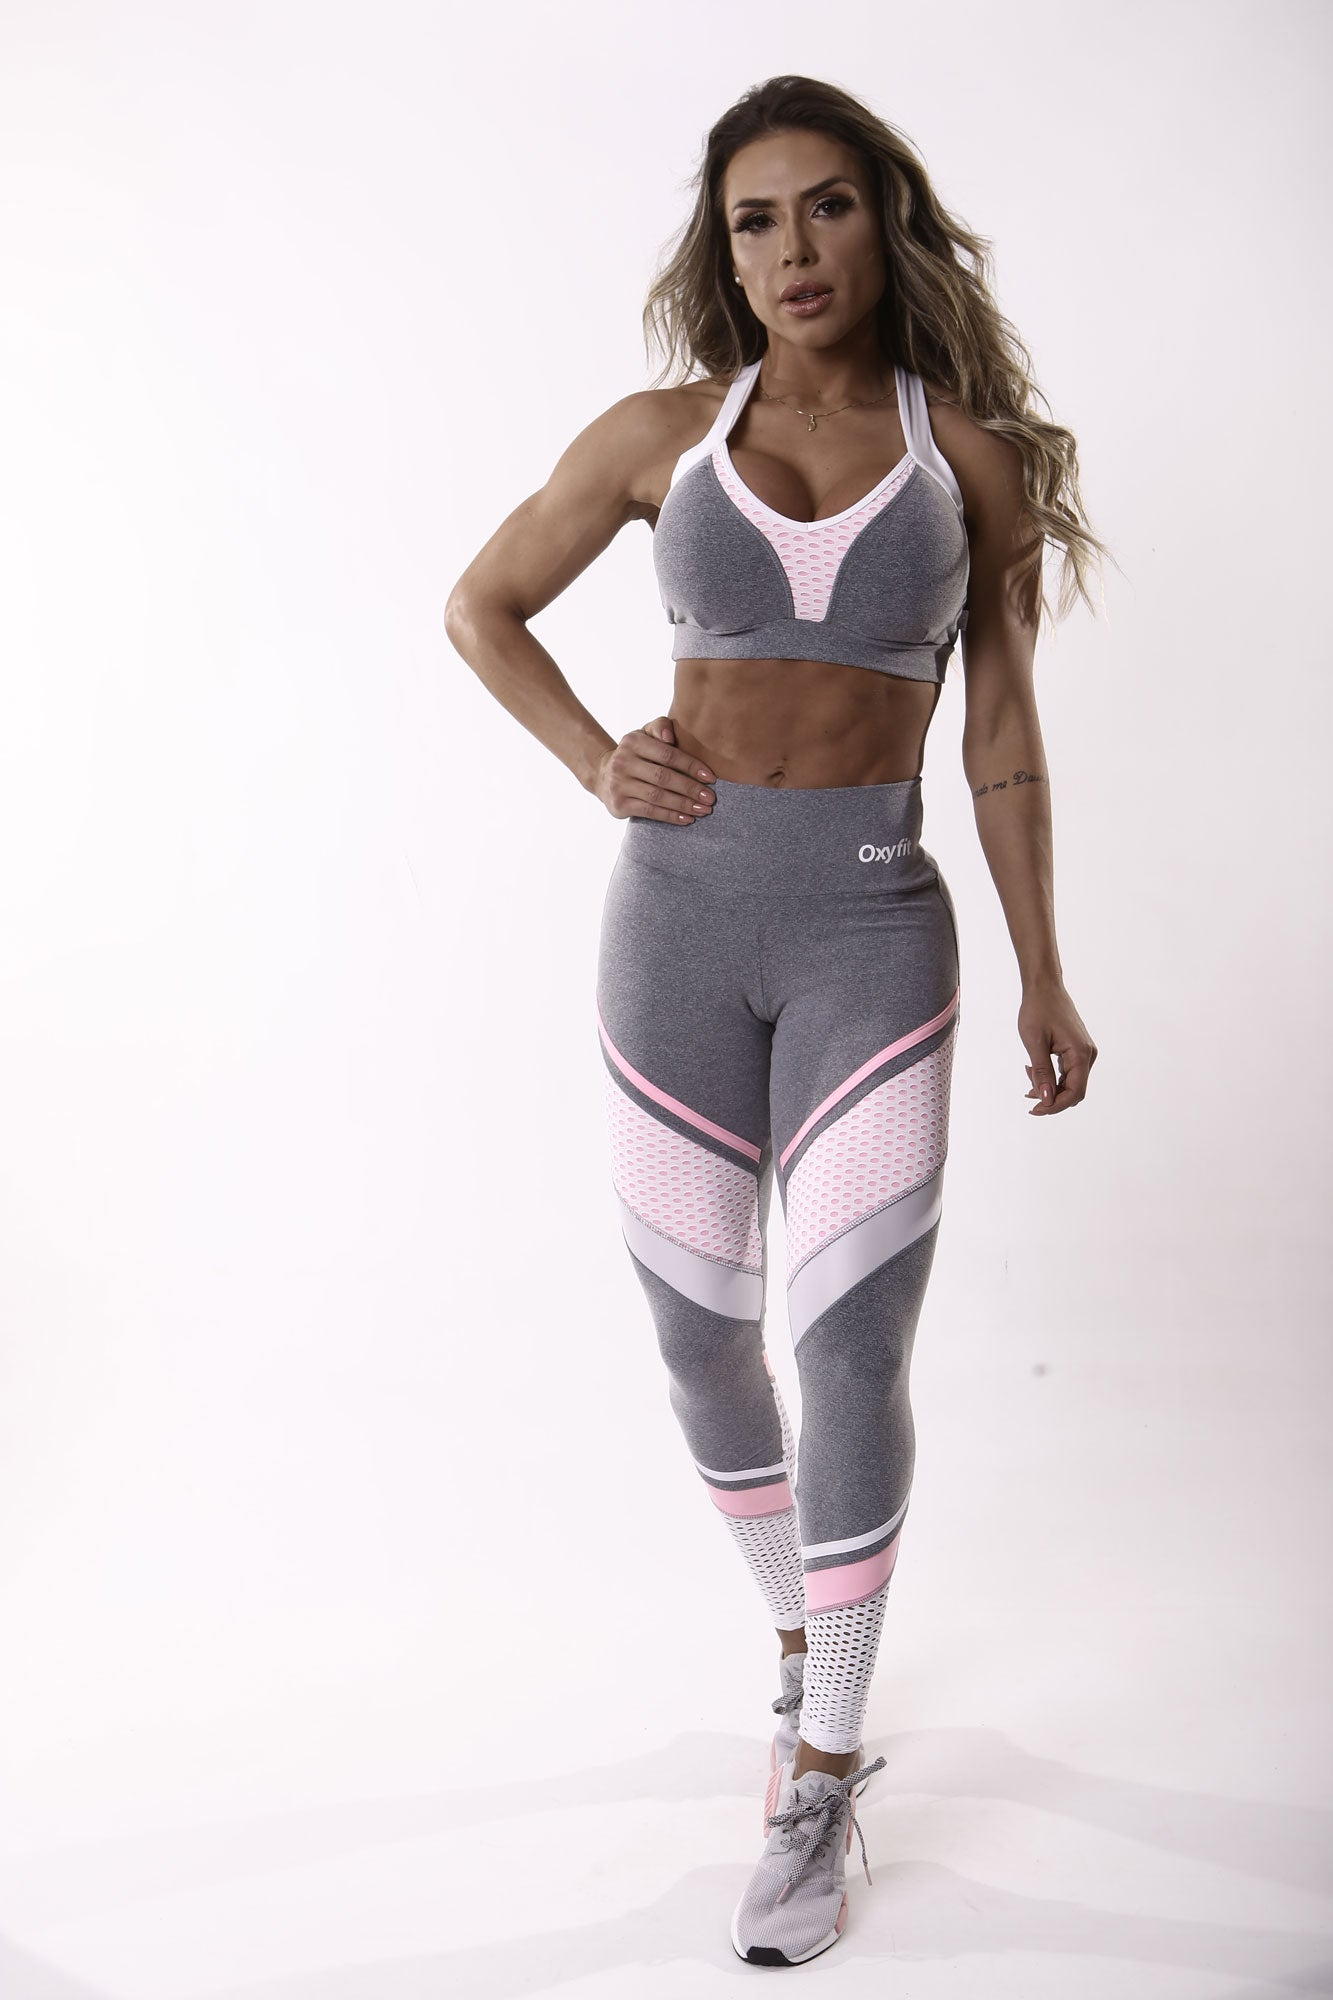 Sunlight Top - OXYFIT - FitZee